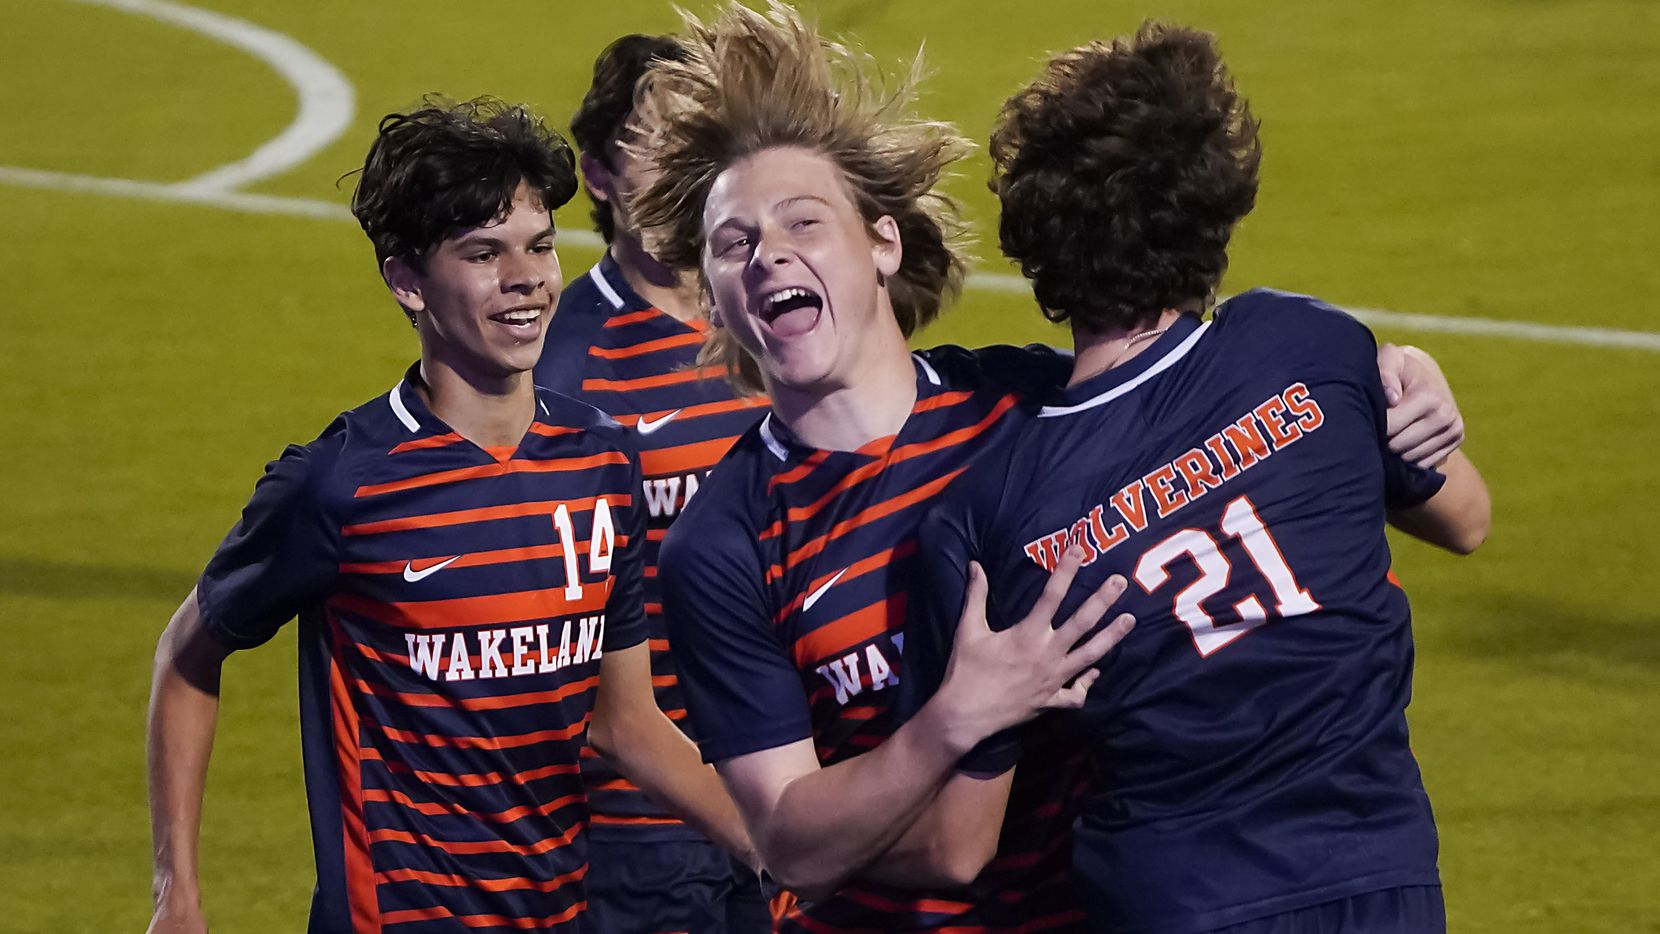 Frisco Wakeland's Jimmy Suerth (21) celebrates with Peyton Atchley (15) after scoring a goal during the first half of a victory over Adamson in a Class 5A boys soccer area-round playoff game at Toyota Stadium on Tuesday, March 30, 2021, in Frisco. (Smiley N. Pool/The Dallas Morning News)